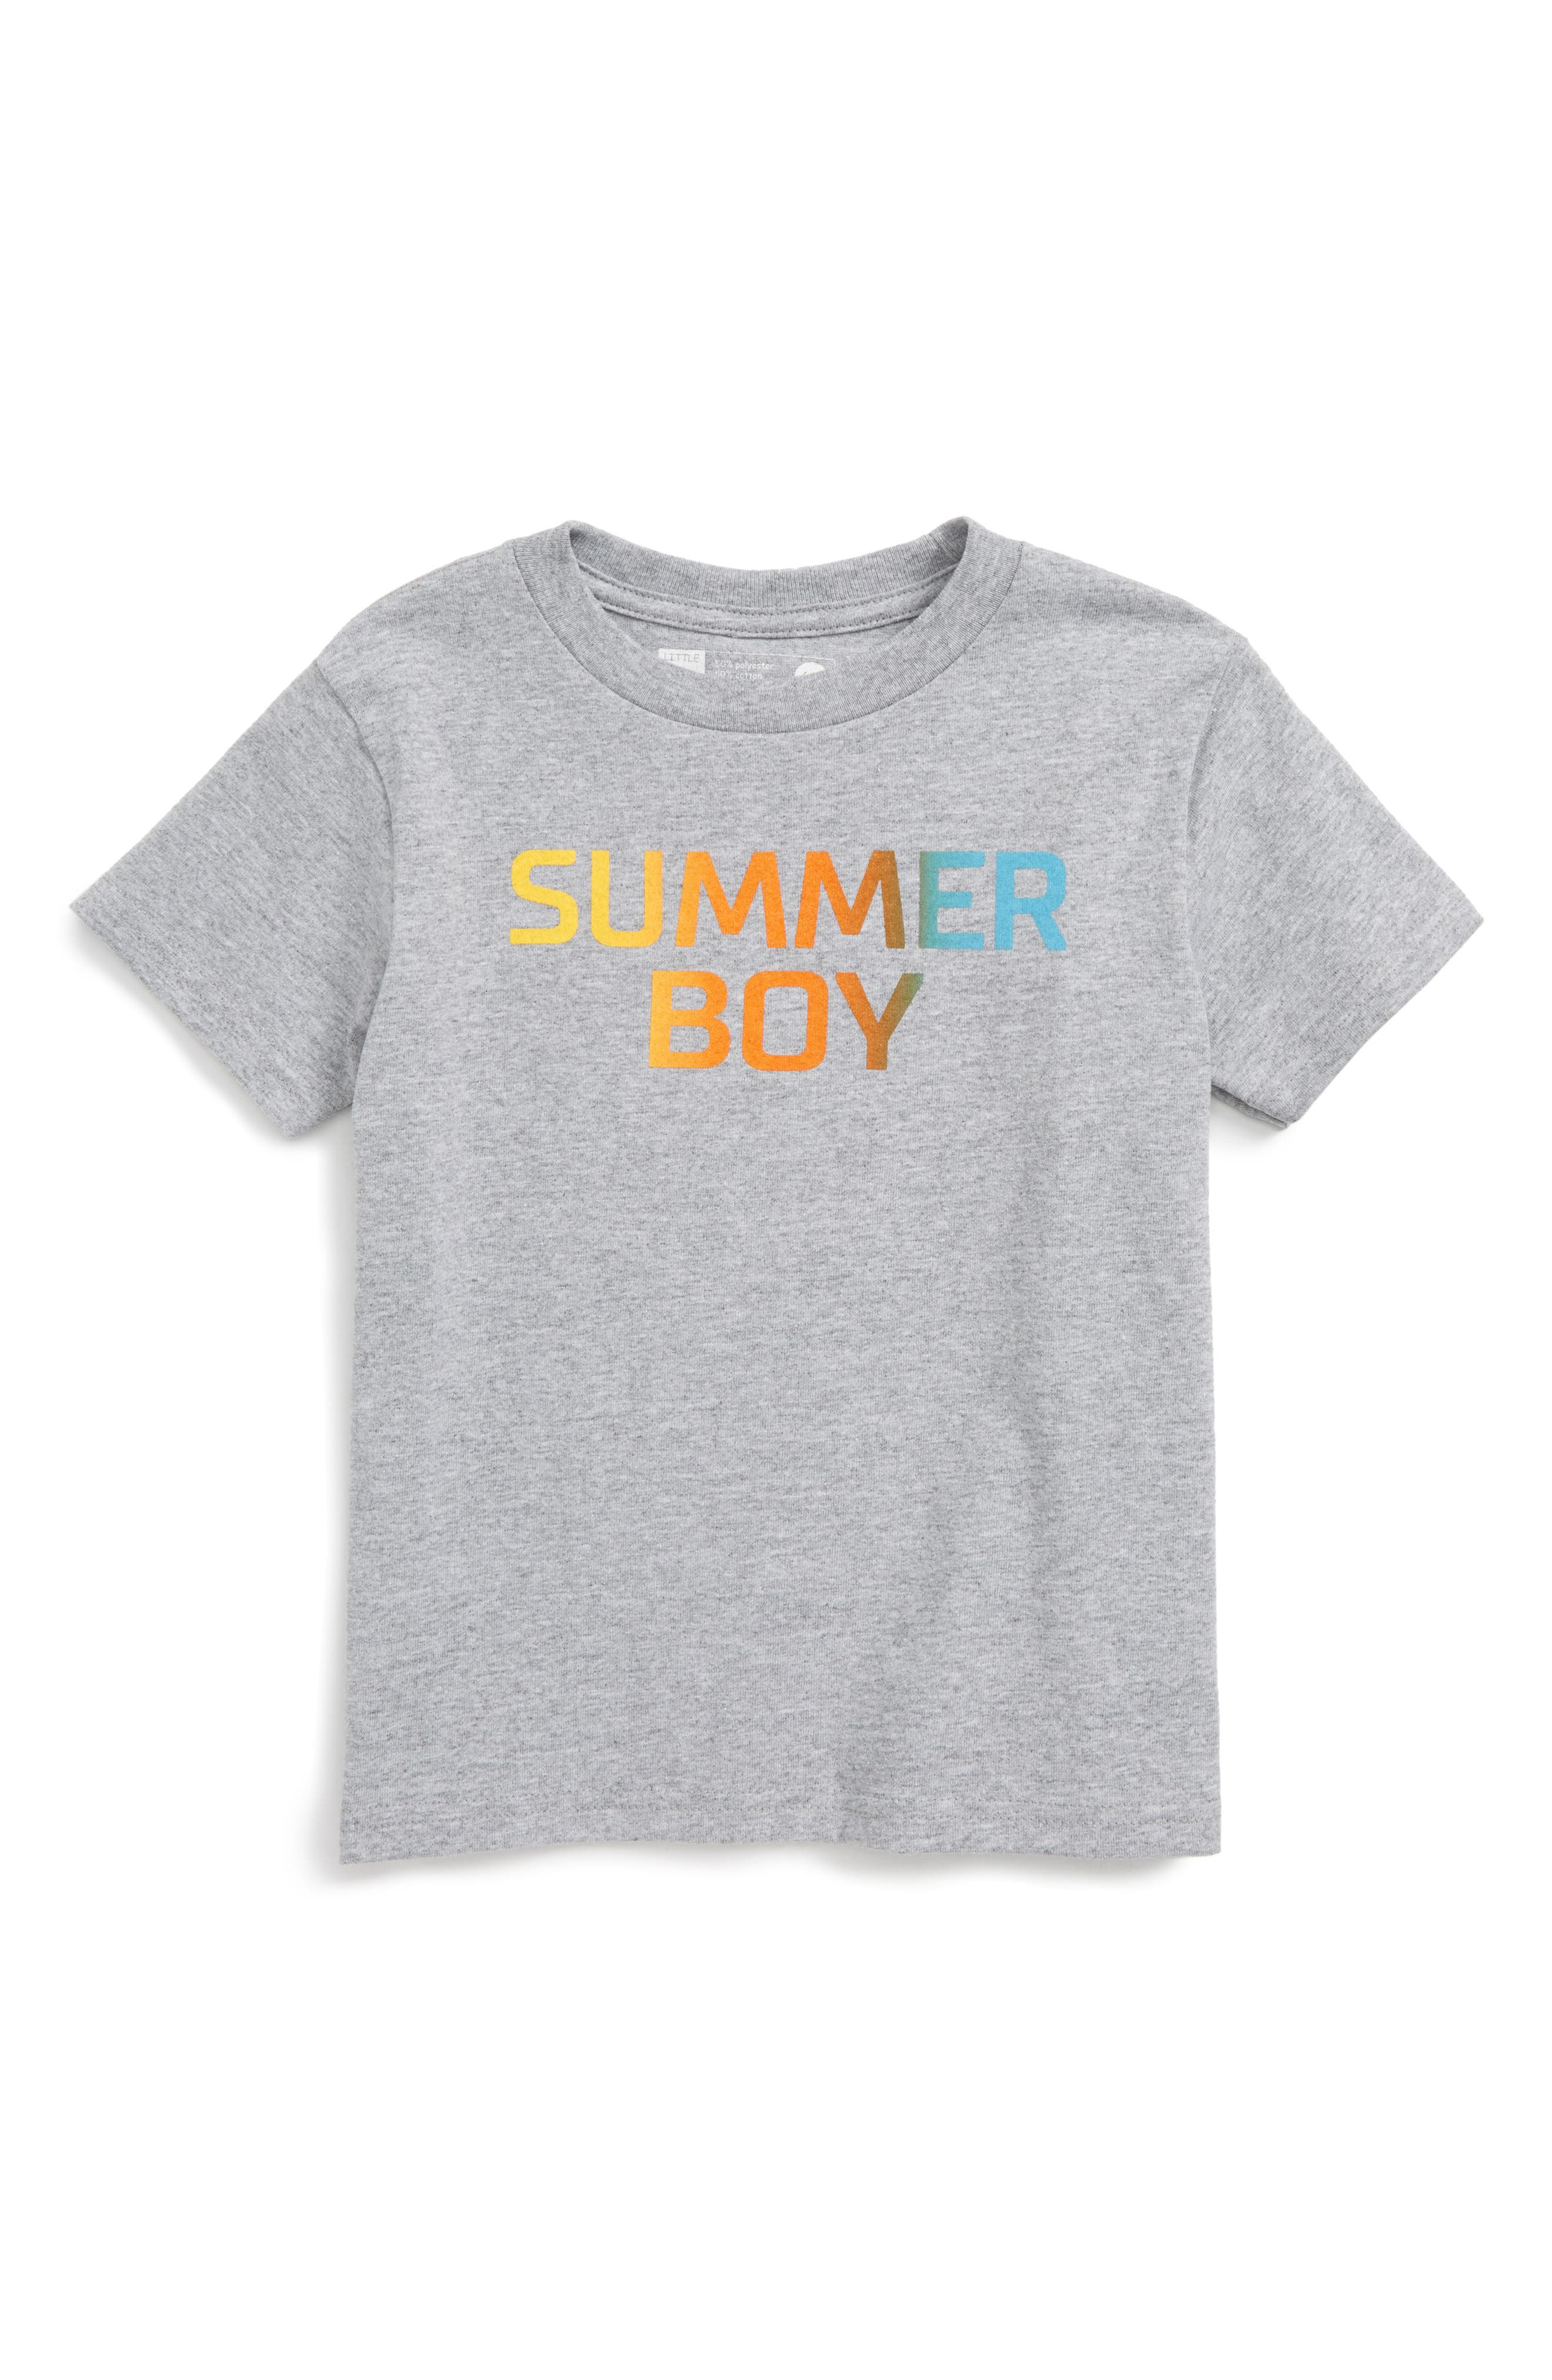 Alternate Image 1 Selected - DiLascia Summer Boy Graphic T-Shirt (Toddler Boys, Little Boys & Big Boys)